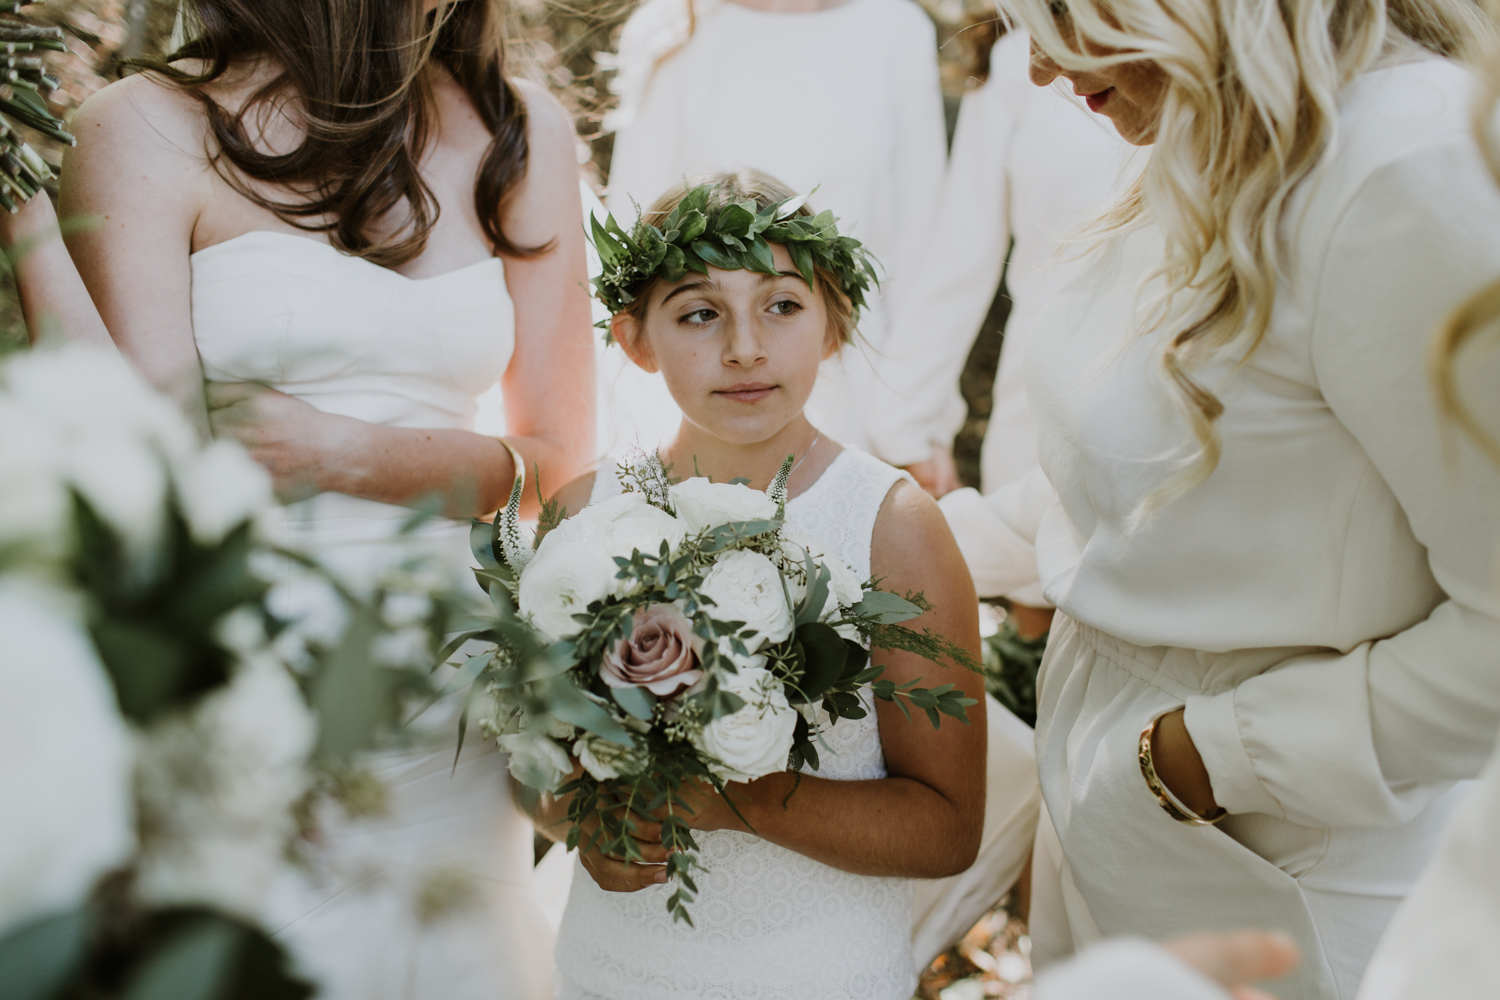 flower girl inspiration. Floral crown, white dress